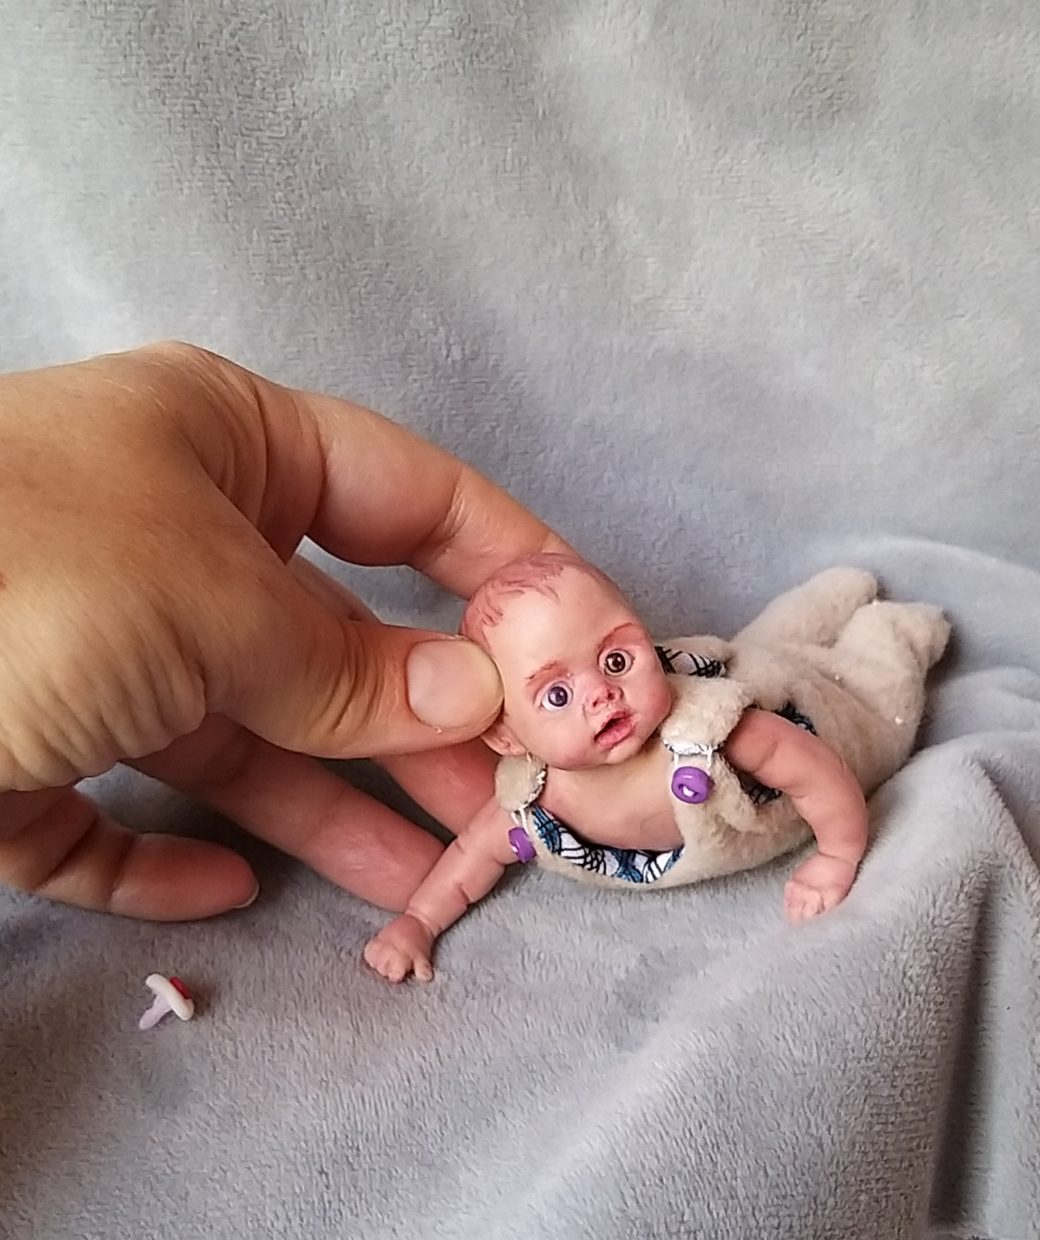 Mini silicone babies full body